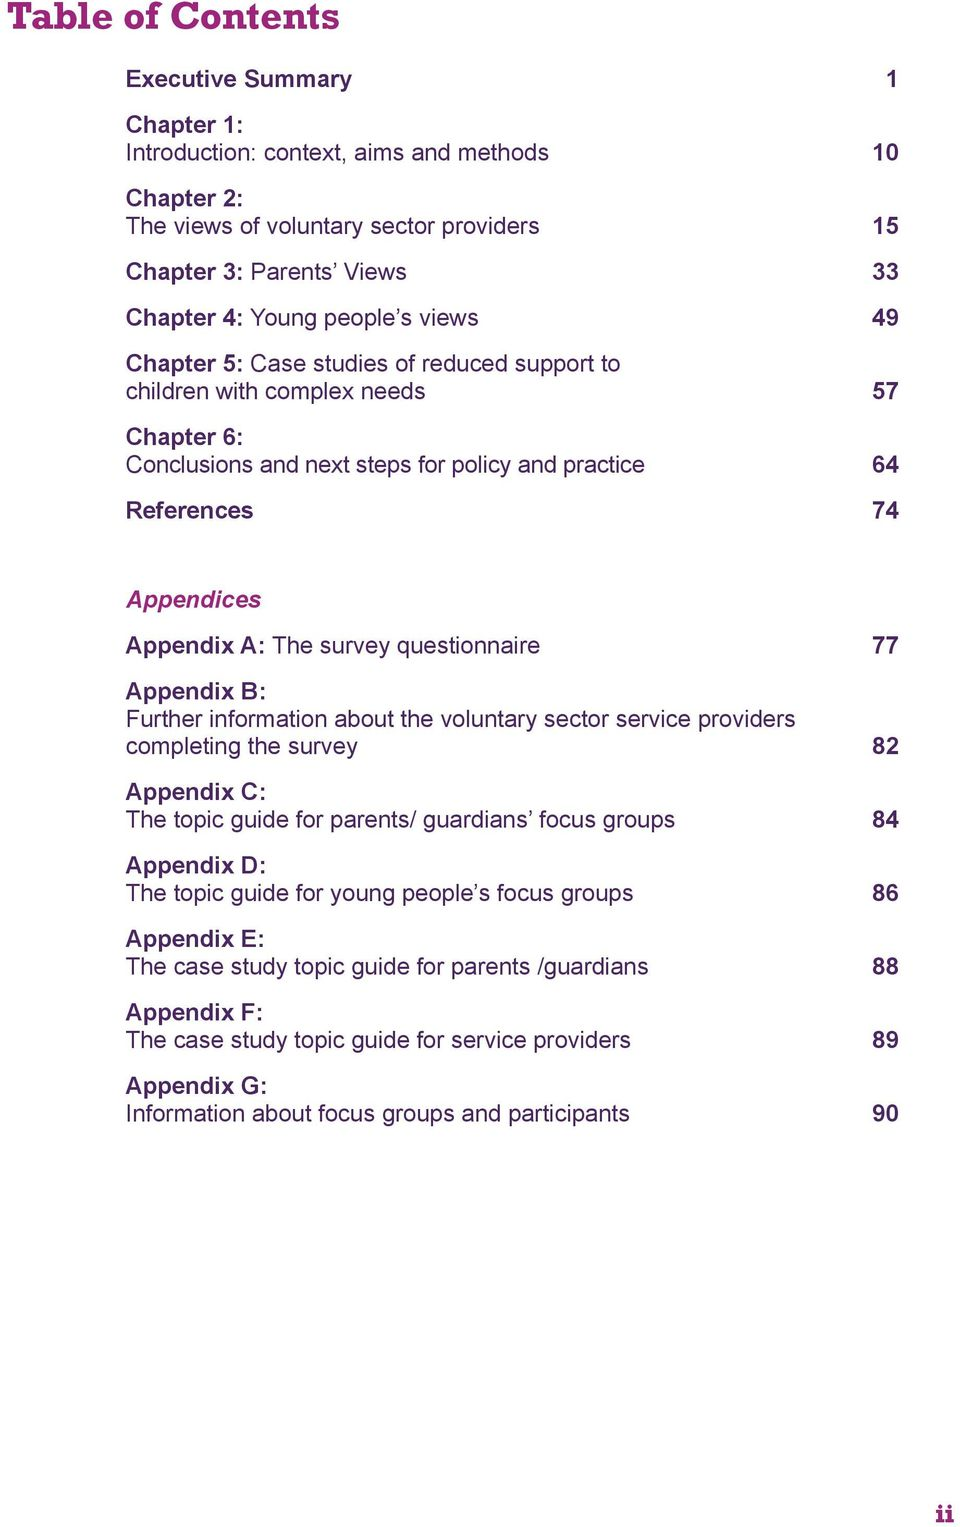 questionnaire 77 Appendix B: Further information about the voluntary sector service providers completing the survey 82 Appendix C: The topic guide for parents/ guardians focus groups 84 Appendix D: